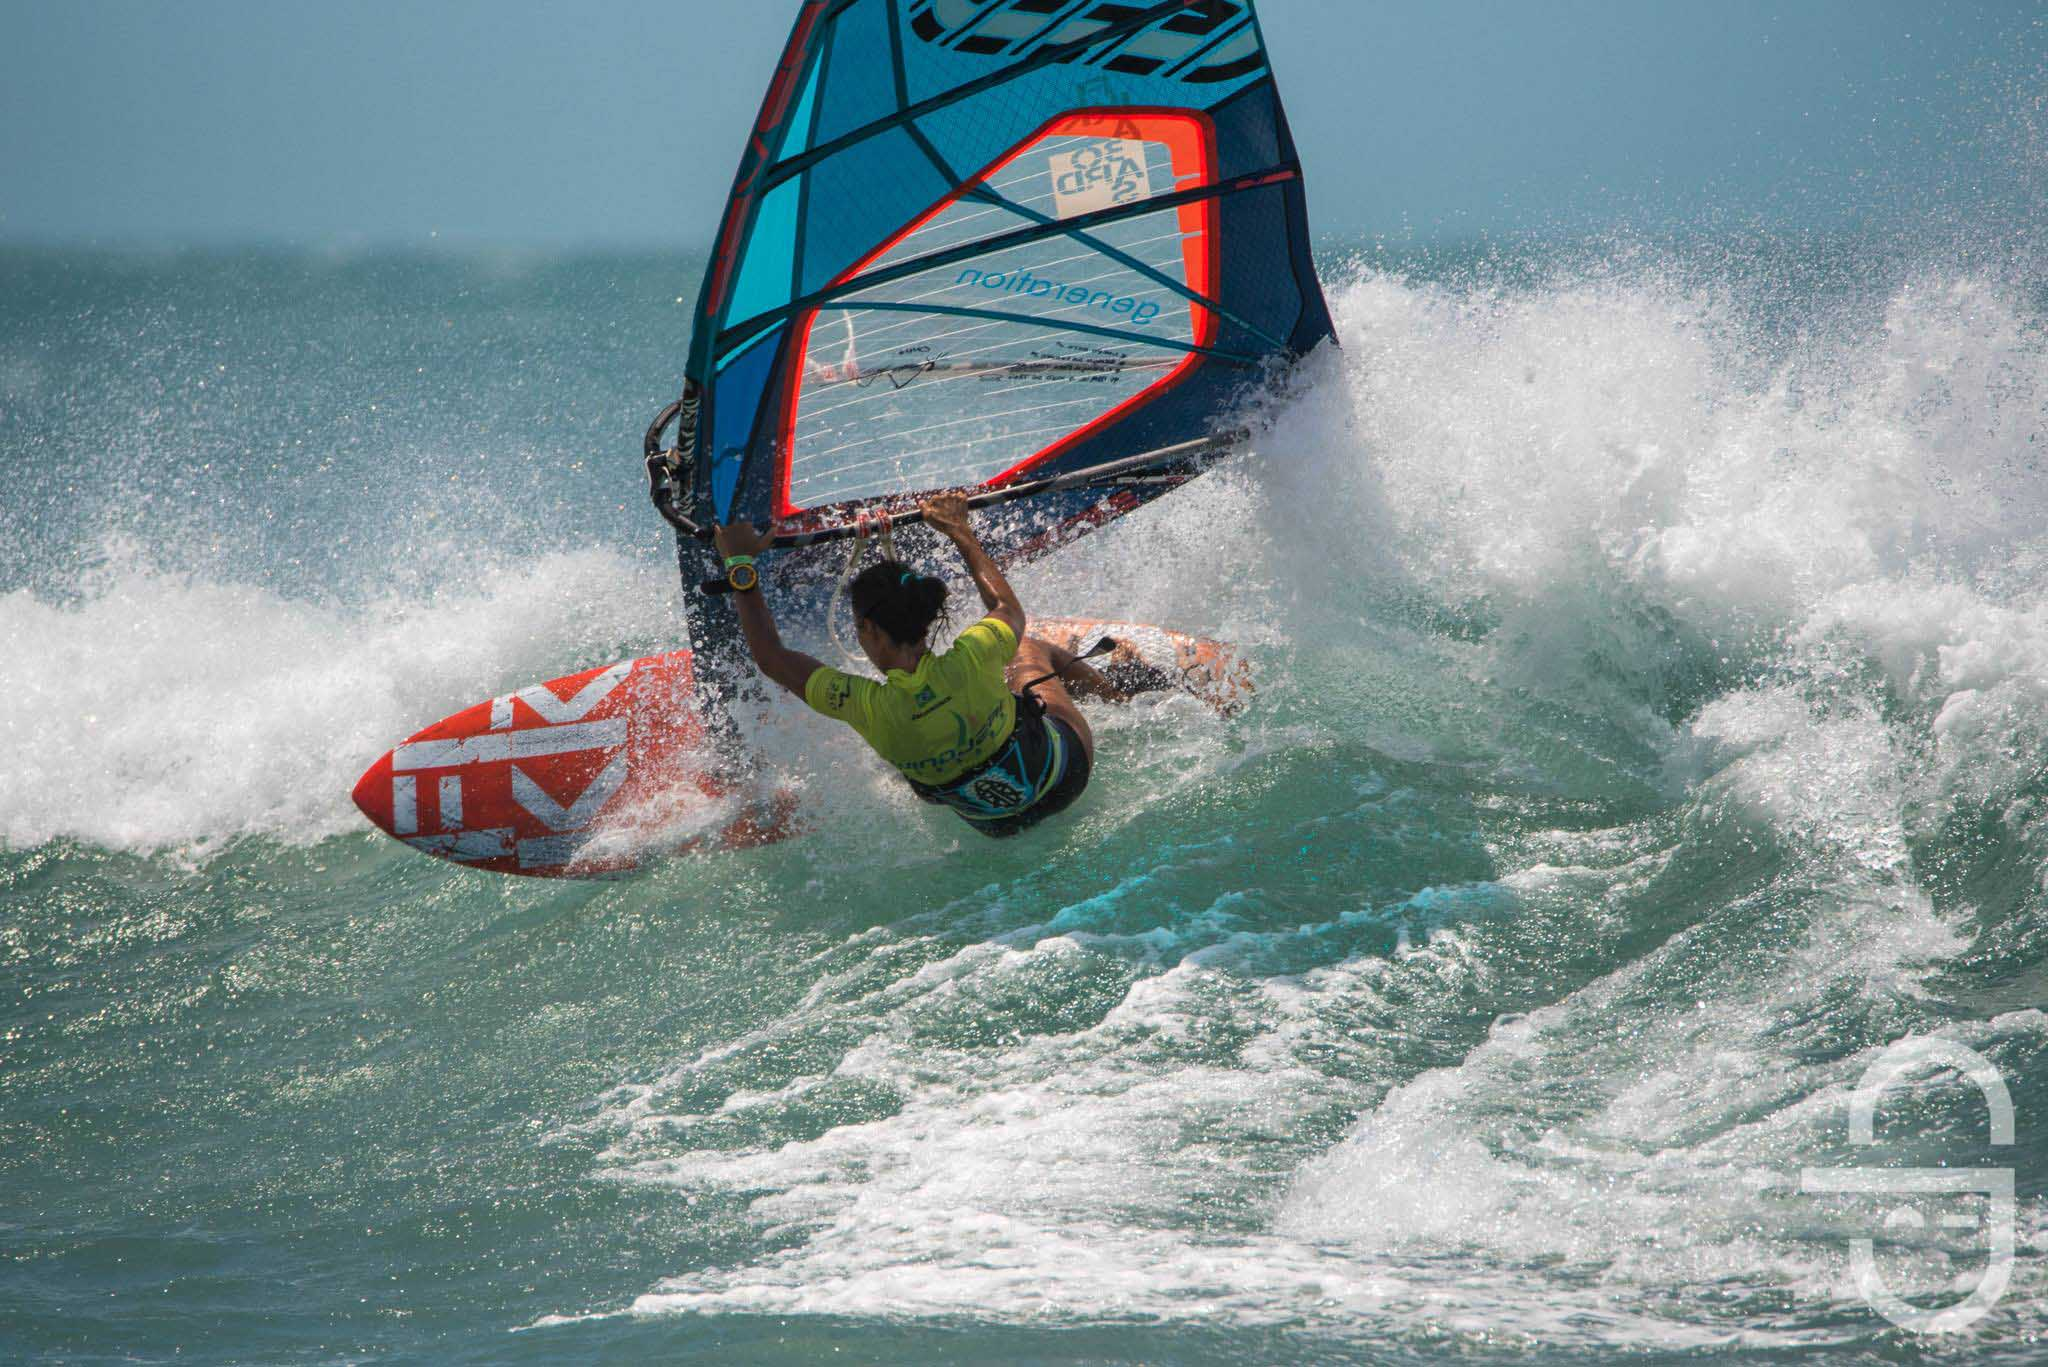 Aurora-Dapolito-windsurf-Team-rider-Flikka-boards